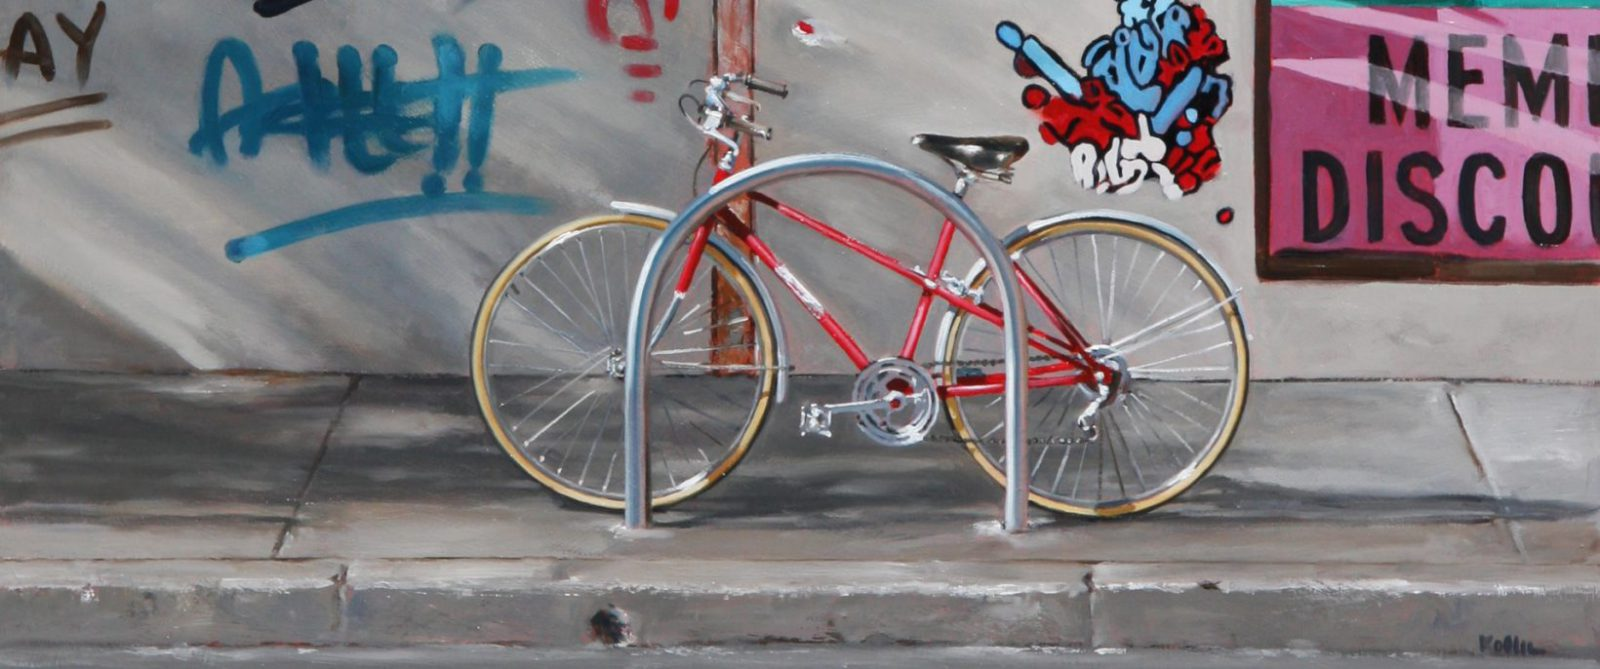 cropped-cropped-SOLD-Bicycle-Newtown-600x600-1.jpg